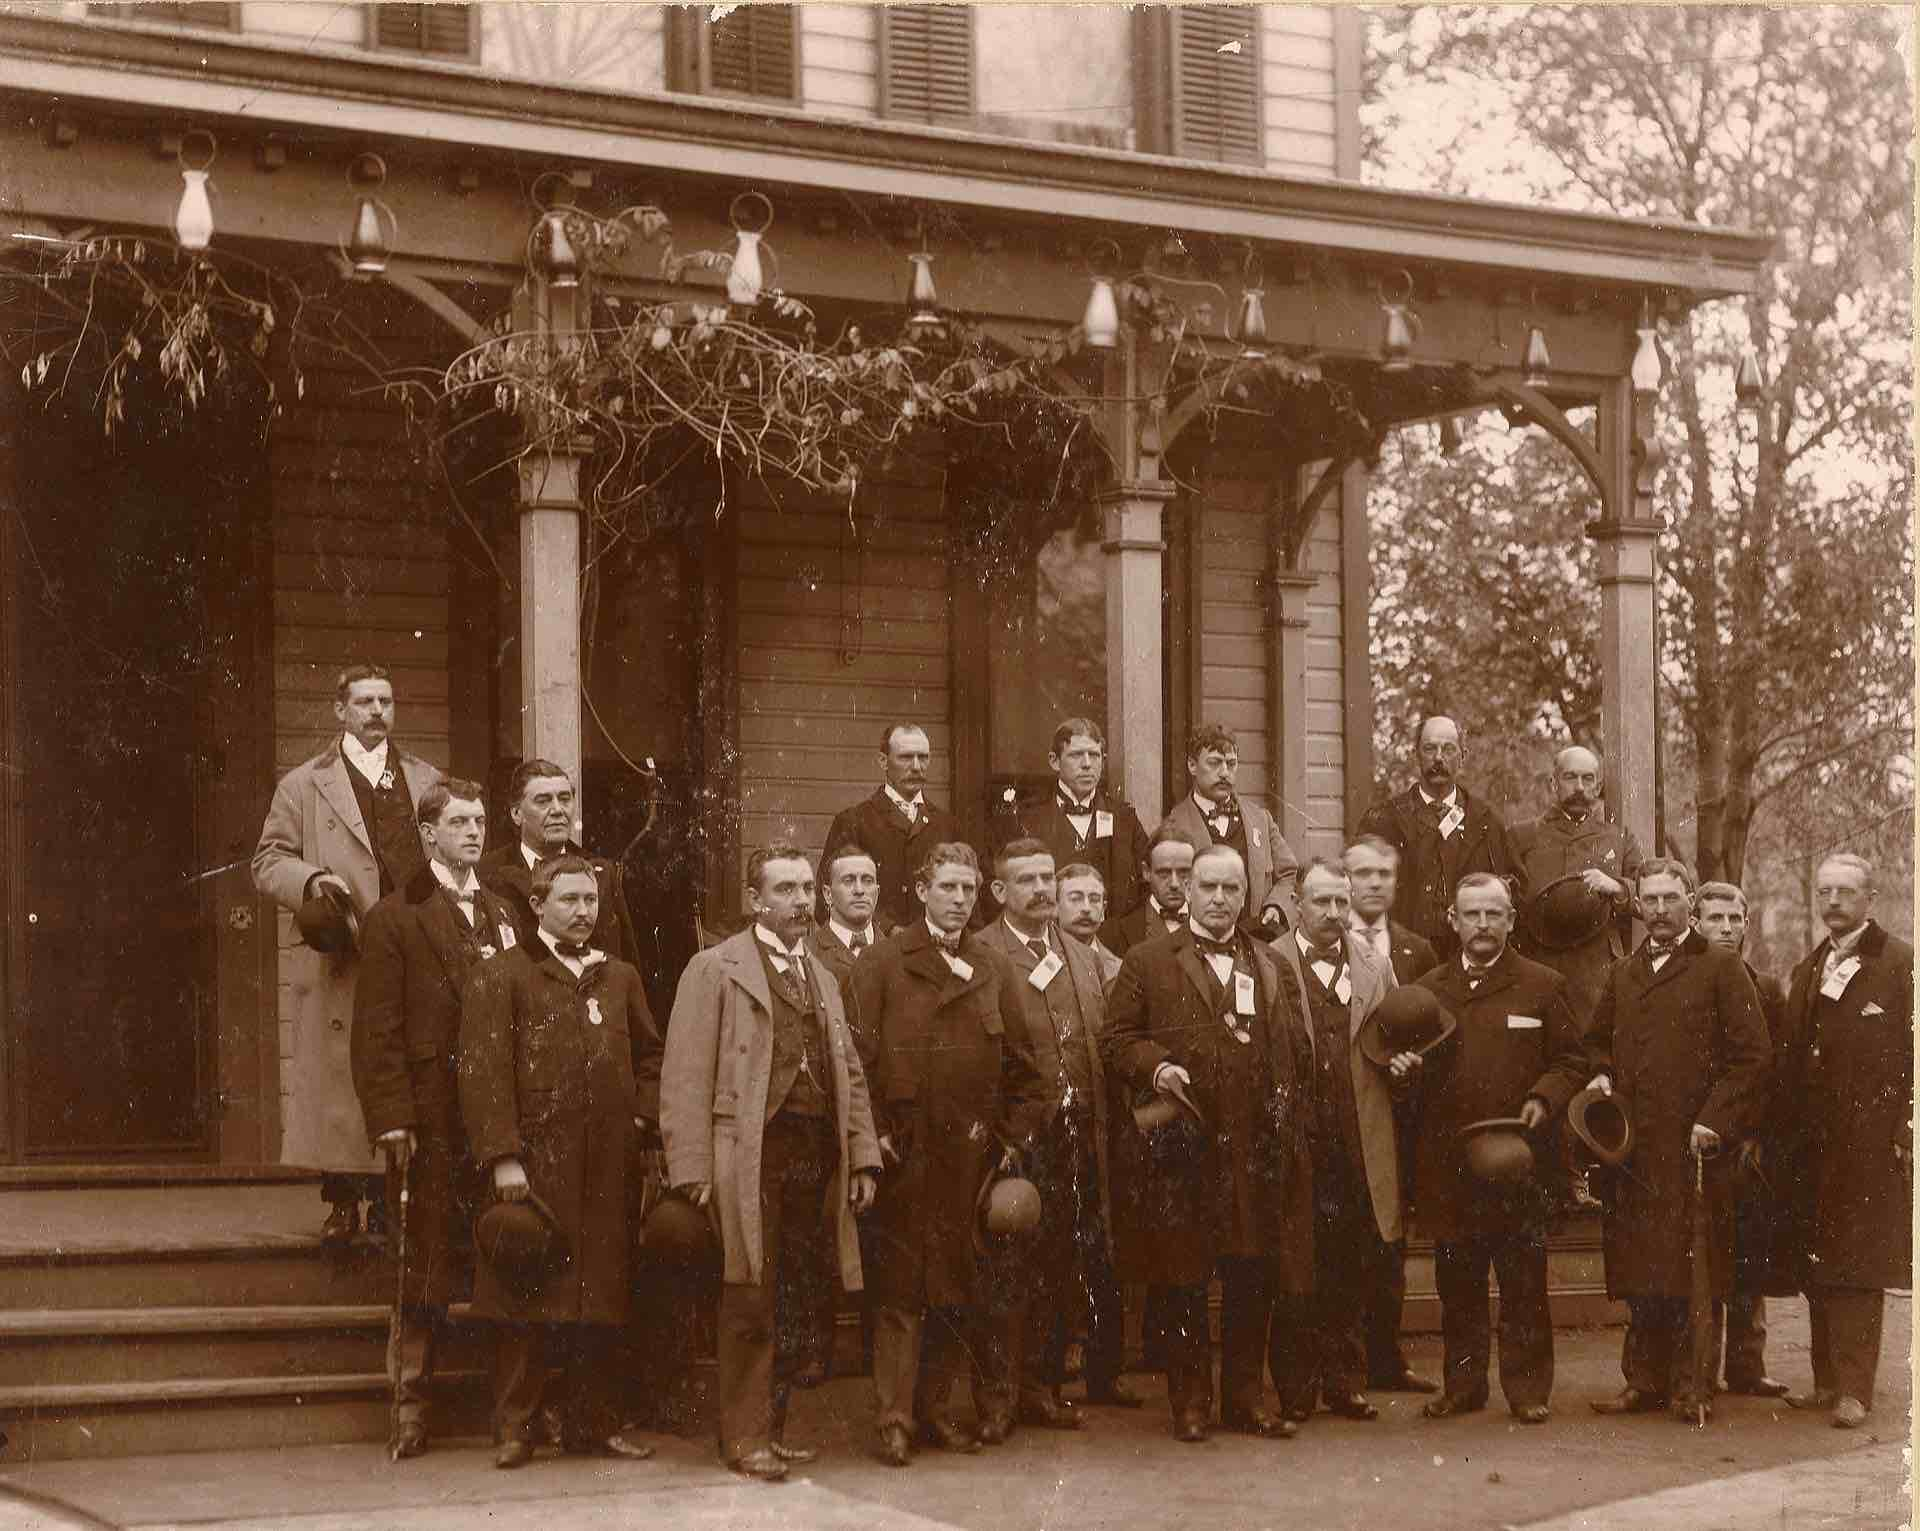 William McKinley, in front of his house, surrounded by about 20 middle-aged white guys in suits